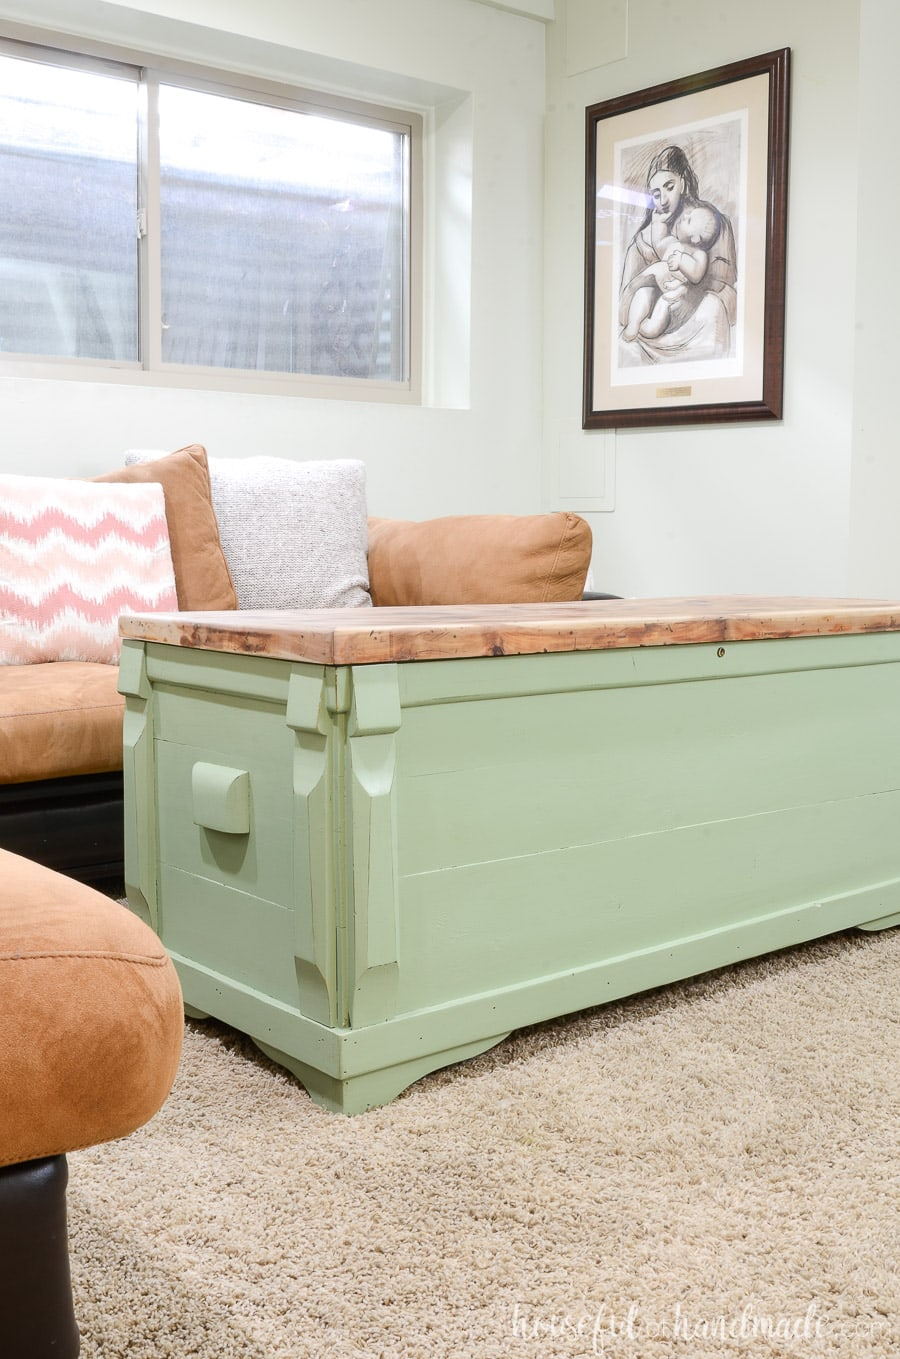 Living room with brown suede sectional and green painted storage chest used as a coffee table.